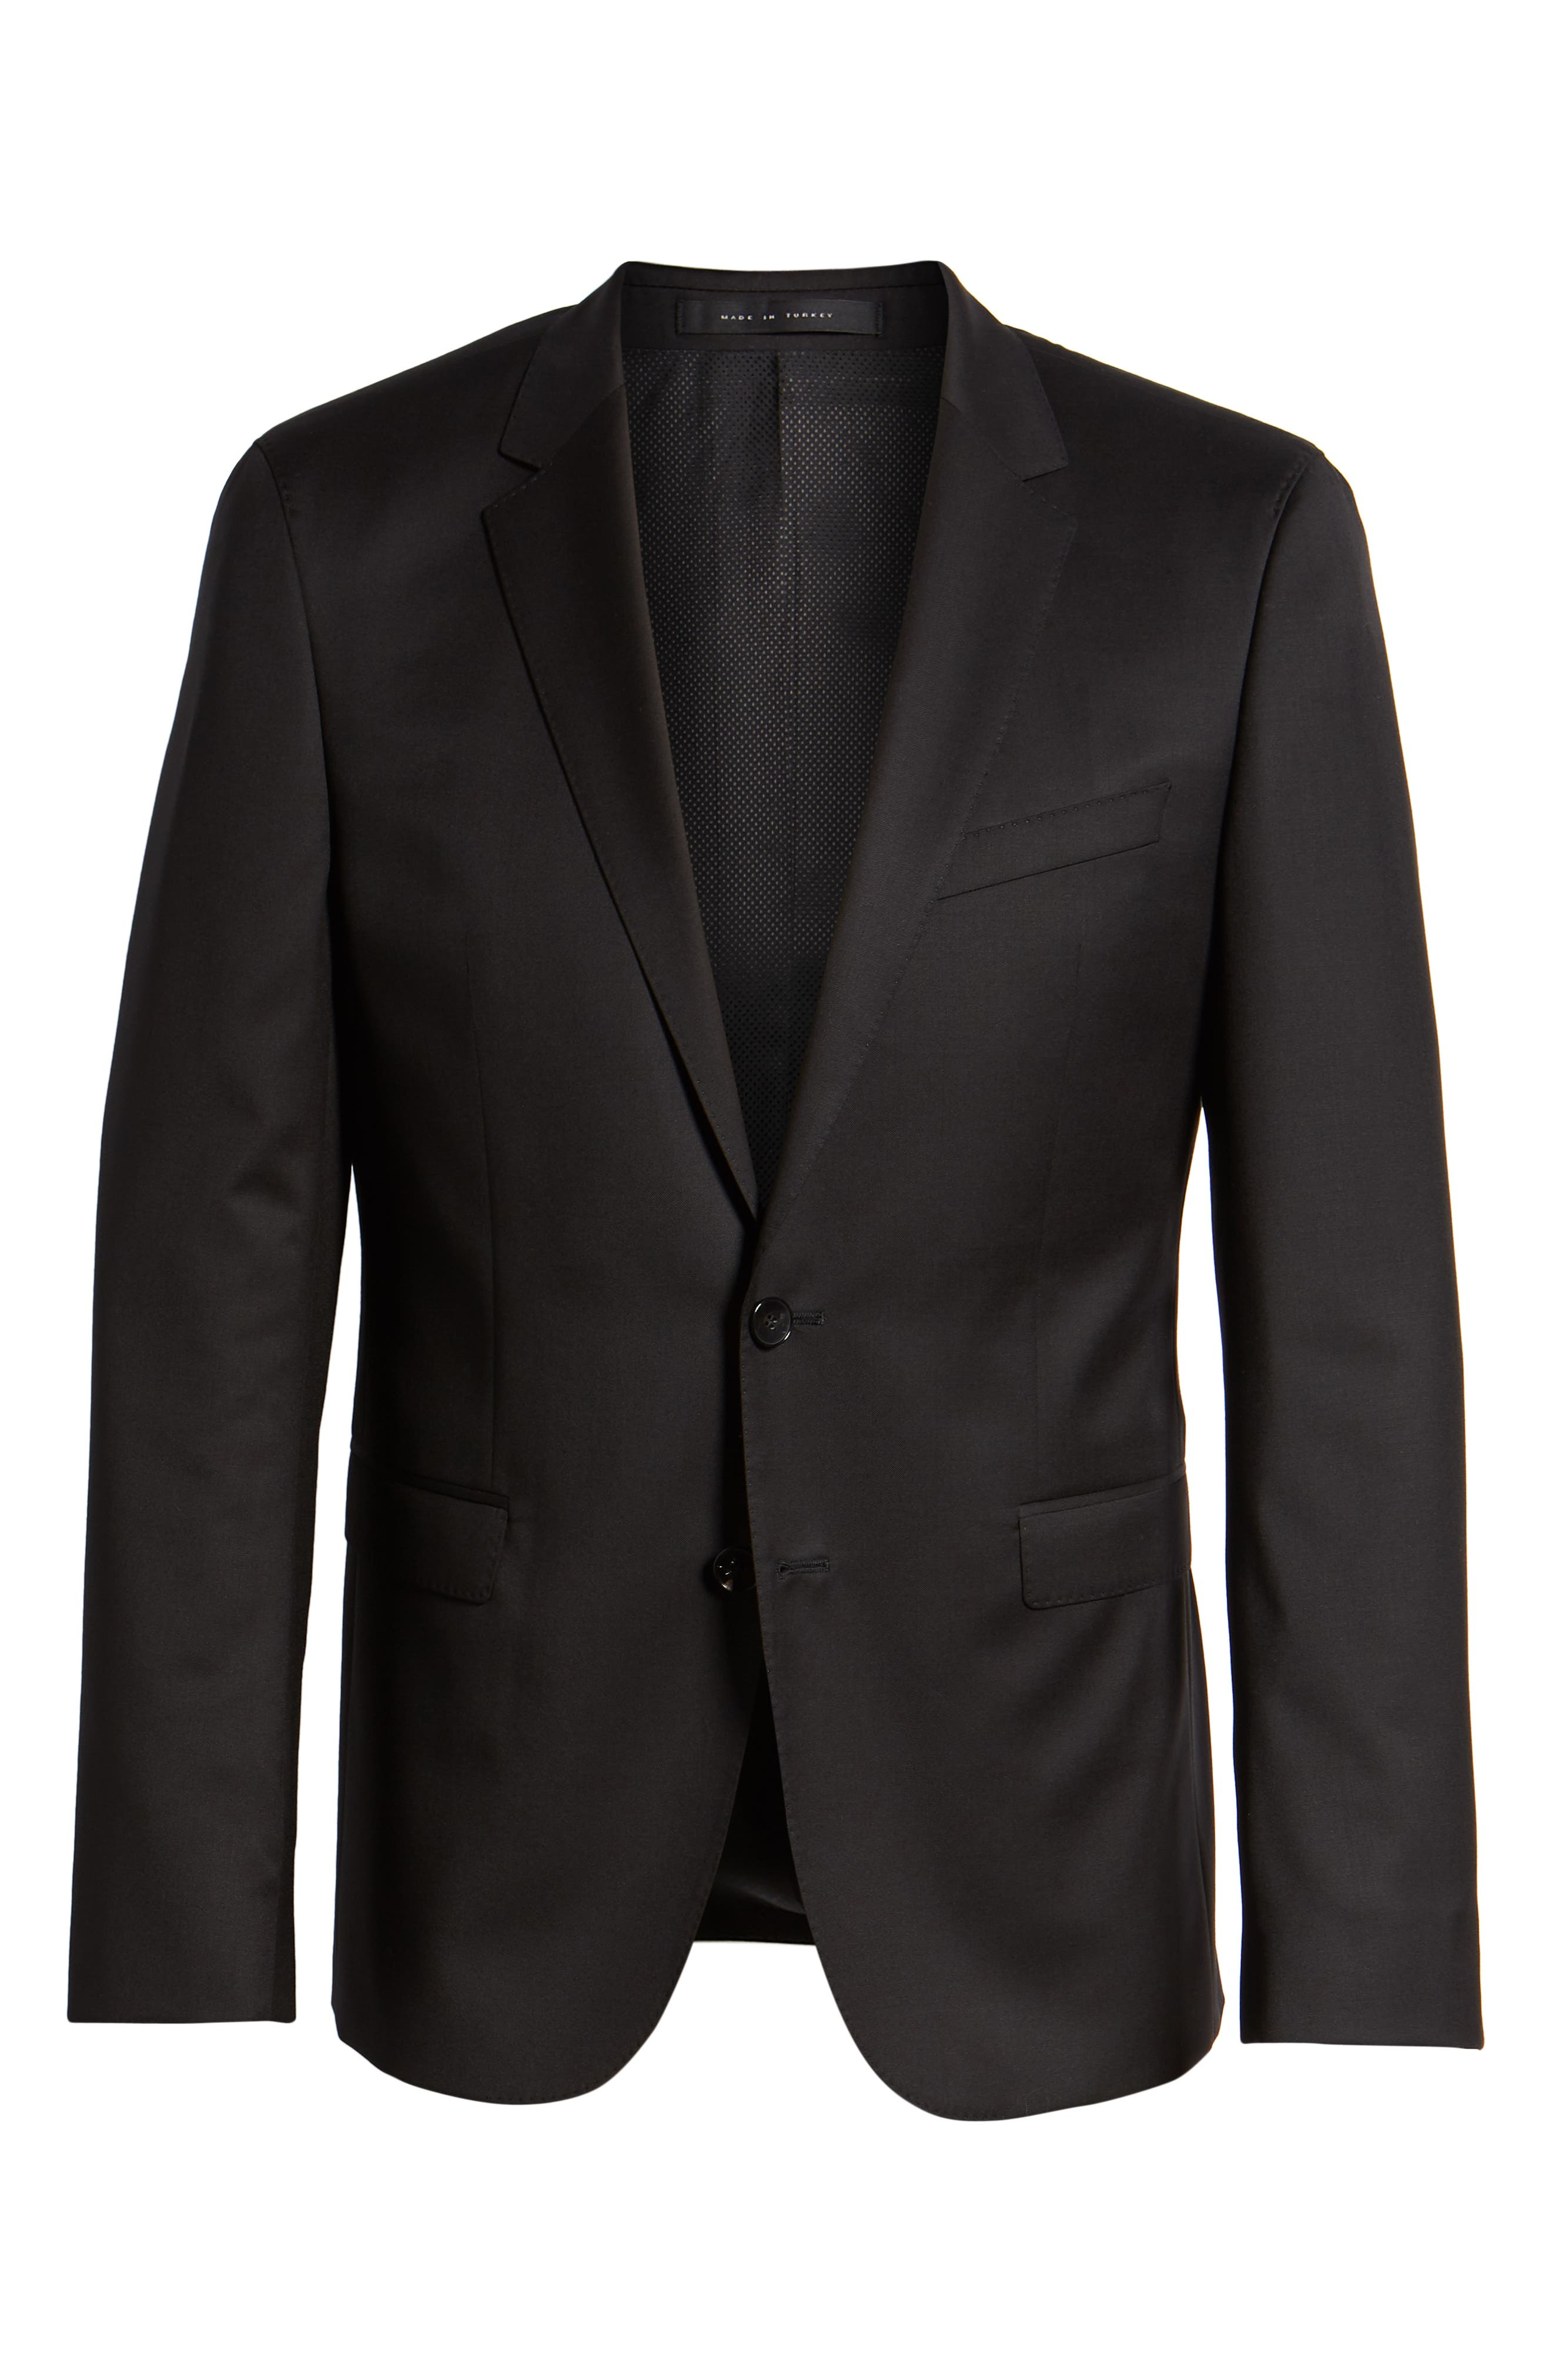 Ryan CYL Extra Trim Fit Solid Wool Blazer,                             Alternate thumbnail 5, color,                             BLACK